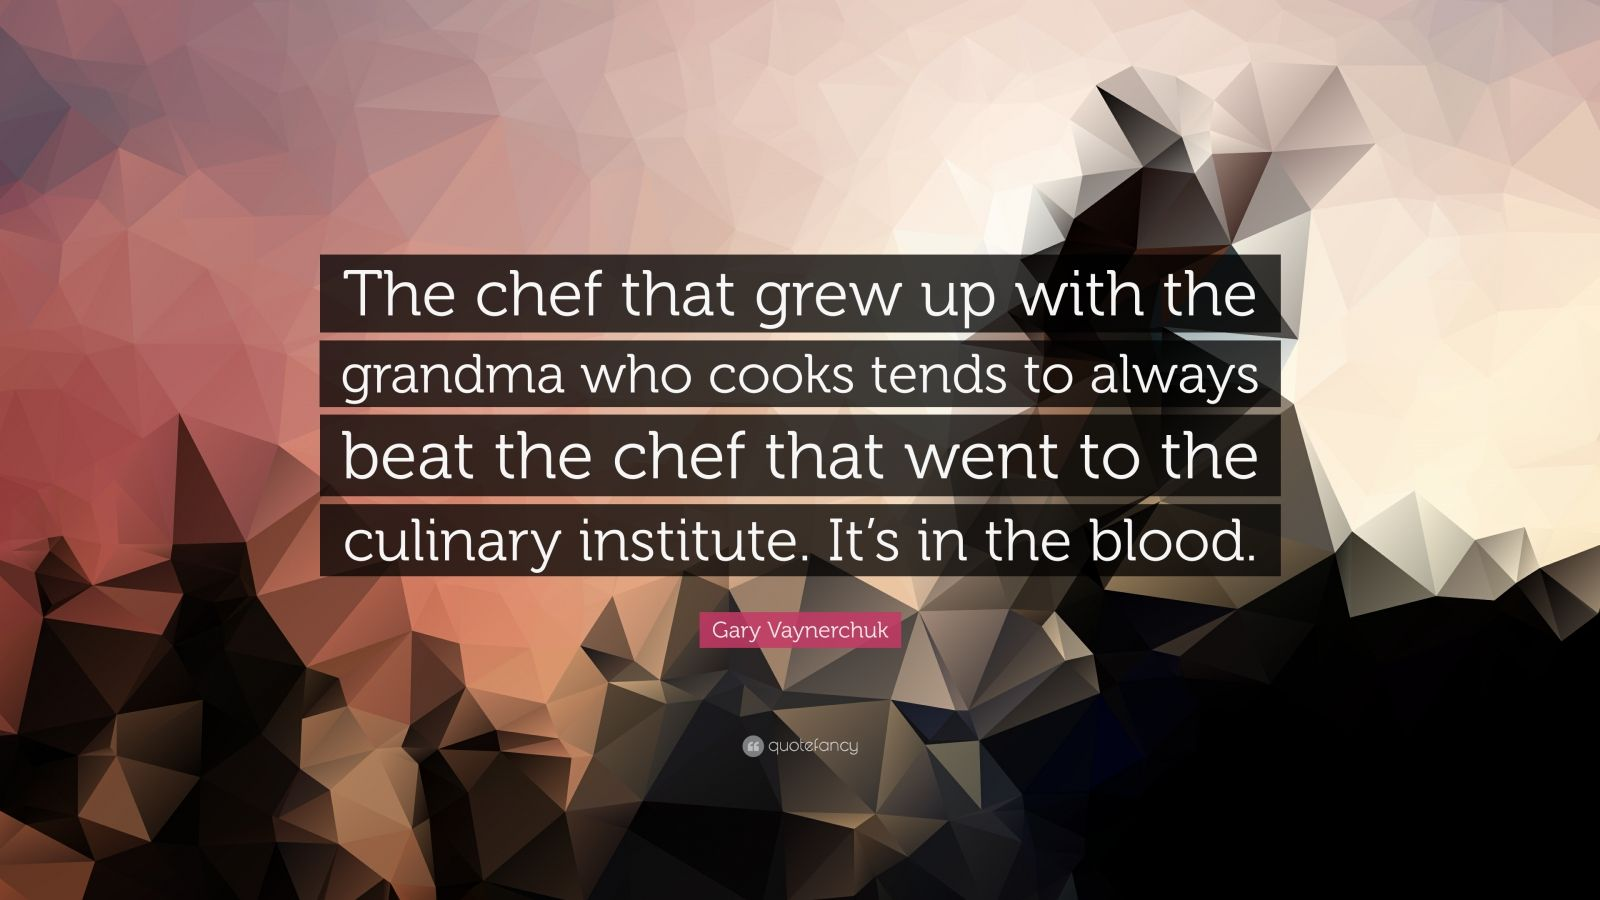 """Gary Vaynerchuk Quote: """"The chef that grew up with the grandma who cooks tends to always beat the chef that went to the culinary institute. It's in the blood."""""""